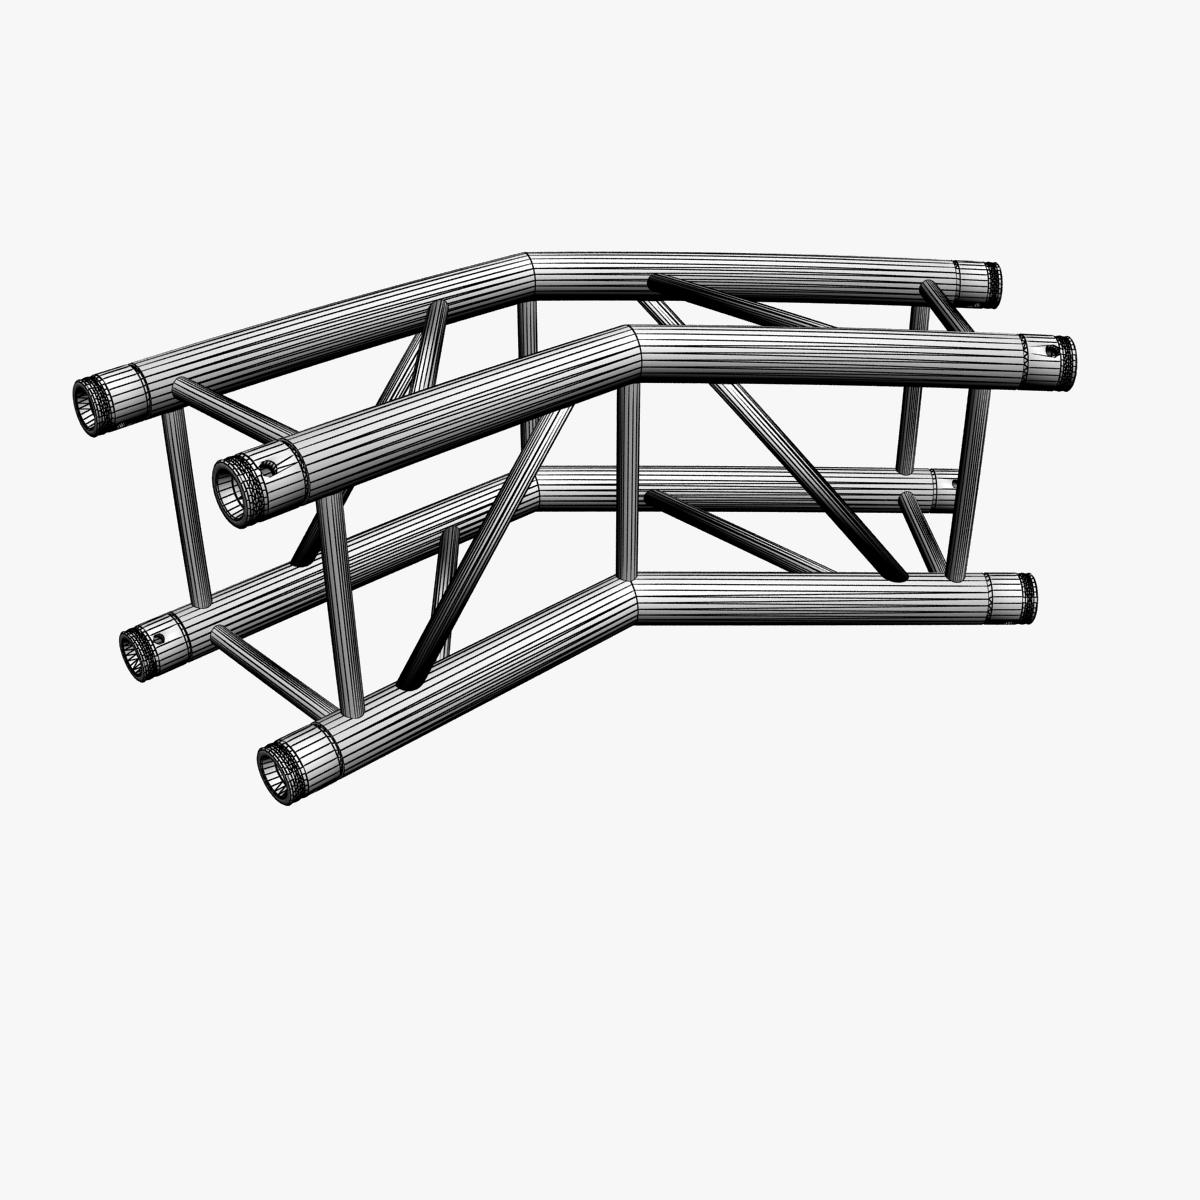 square truss standard (collection 24 modular) 3d model 3ds max dxf fbx c4d dae  texture obj 216363